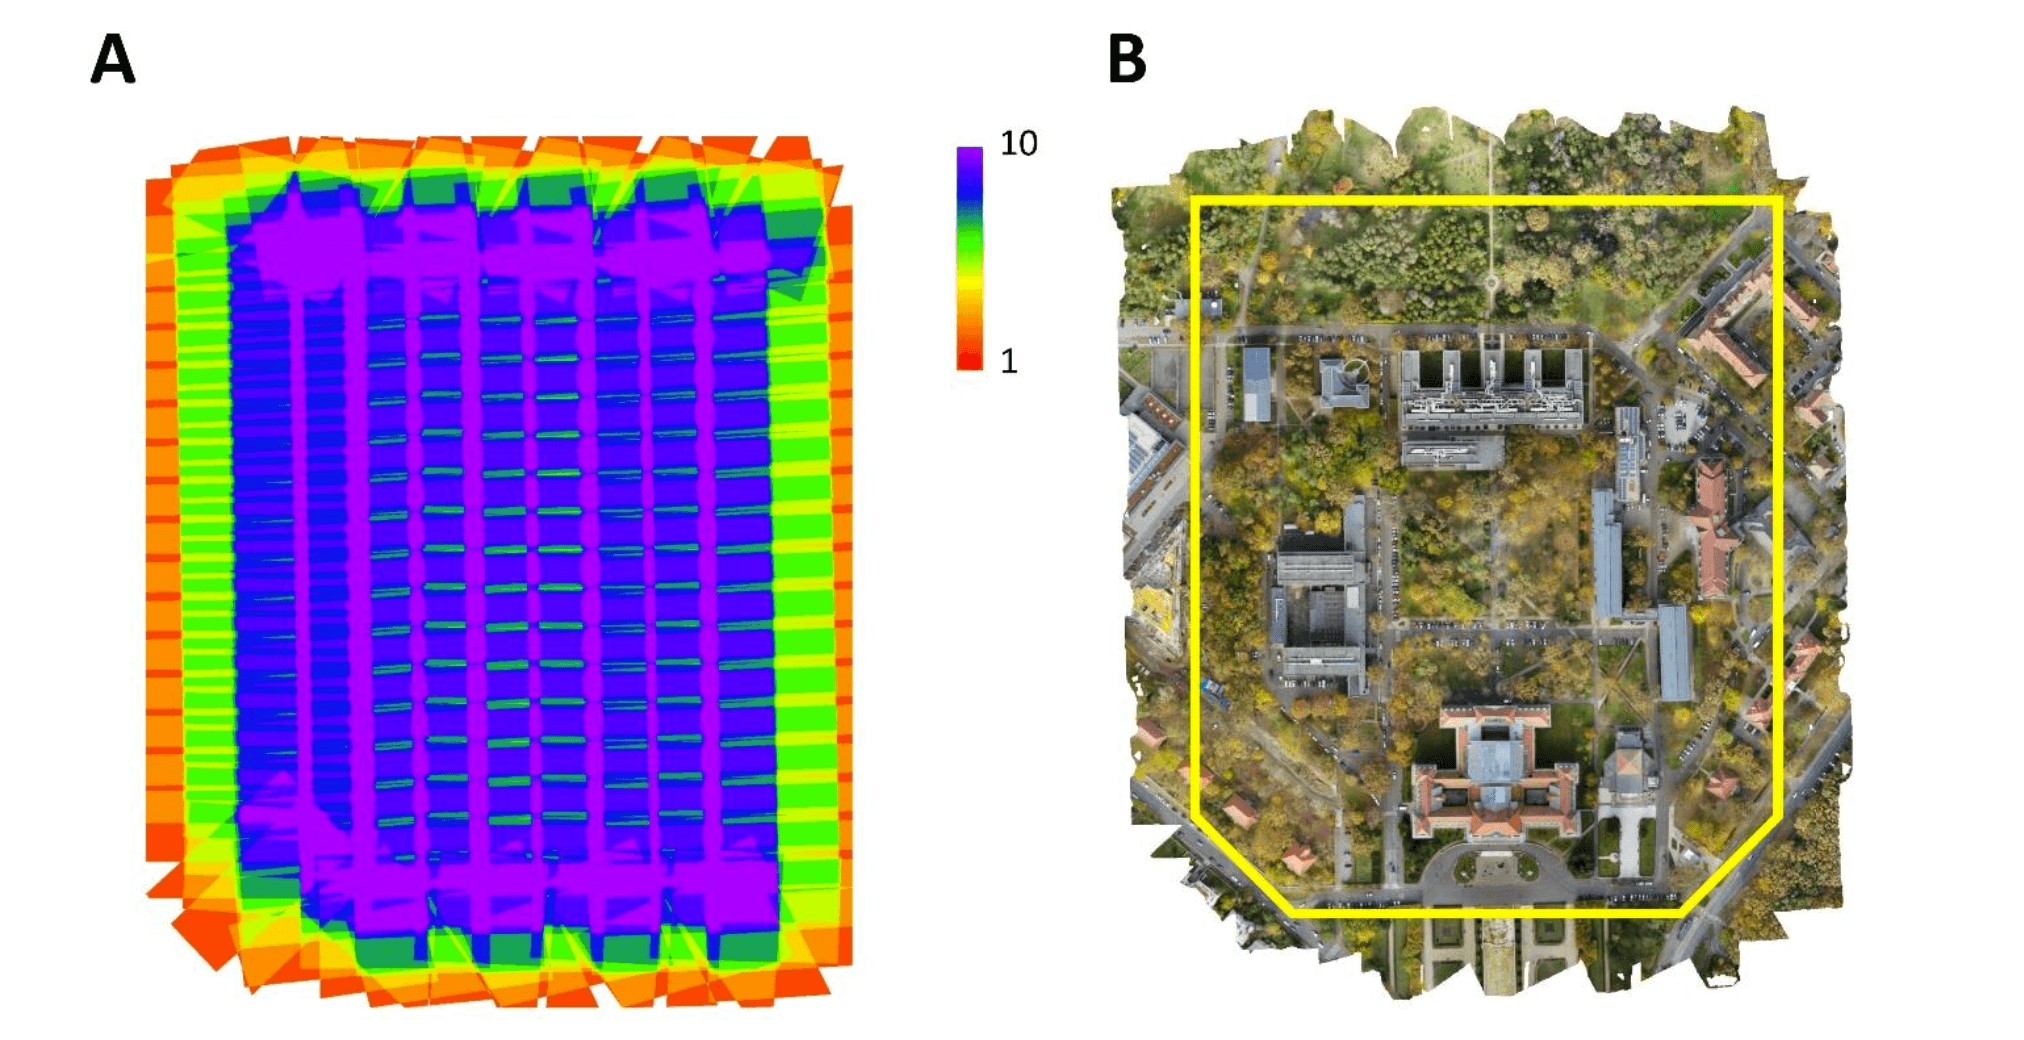 Images taken by the commercial drone (A) and the sample area at the University of Aberdeen (B)